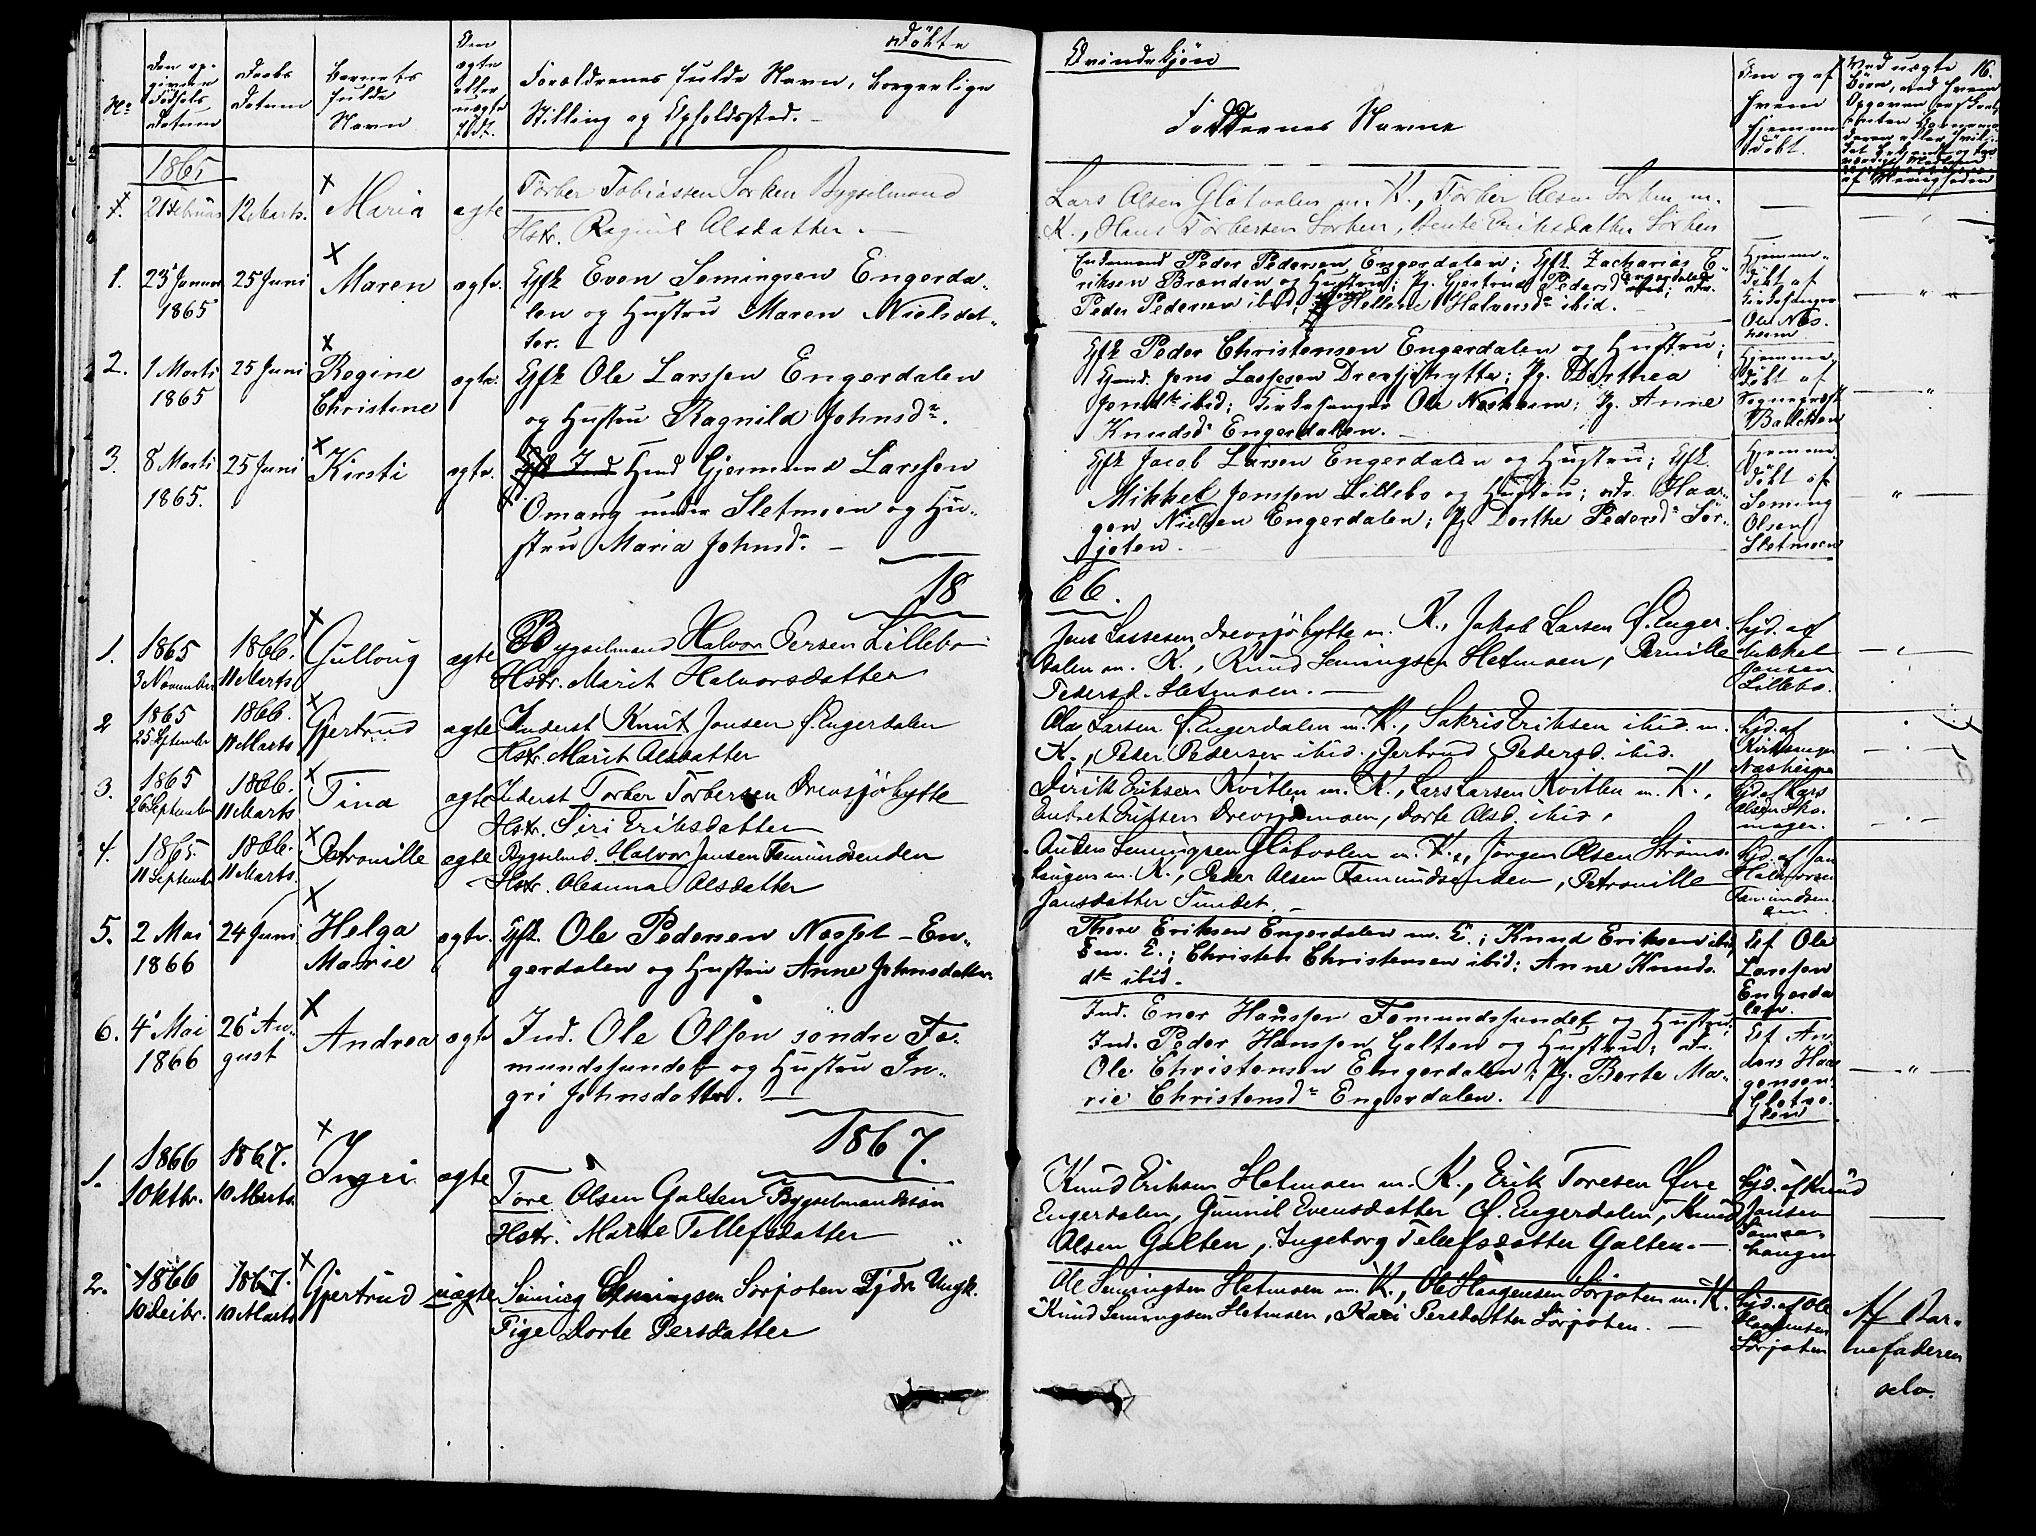 SAH, Rendalen prestekontor, H/Ha/Hab/L0002: Parish register (copy) no. 2, 1858-1880, p. 16